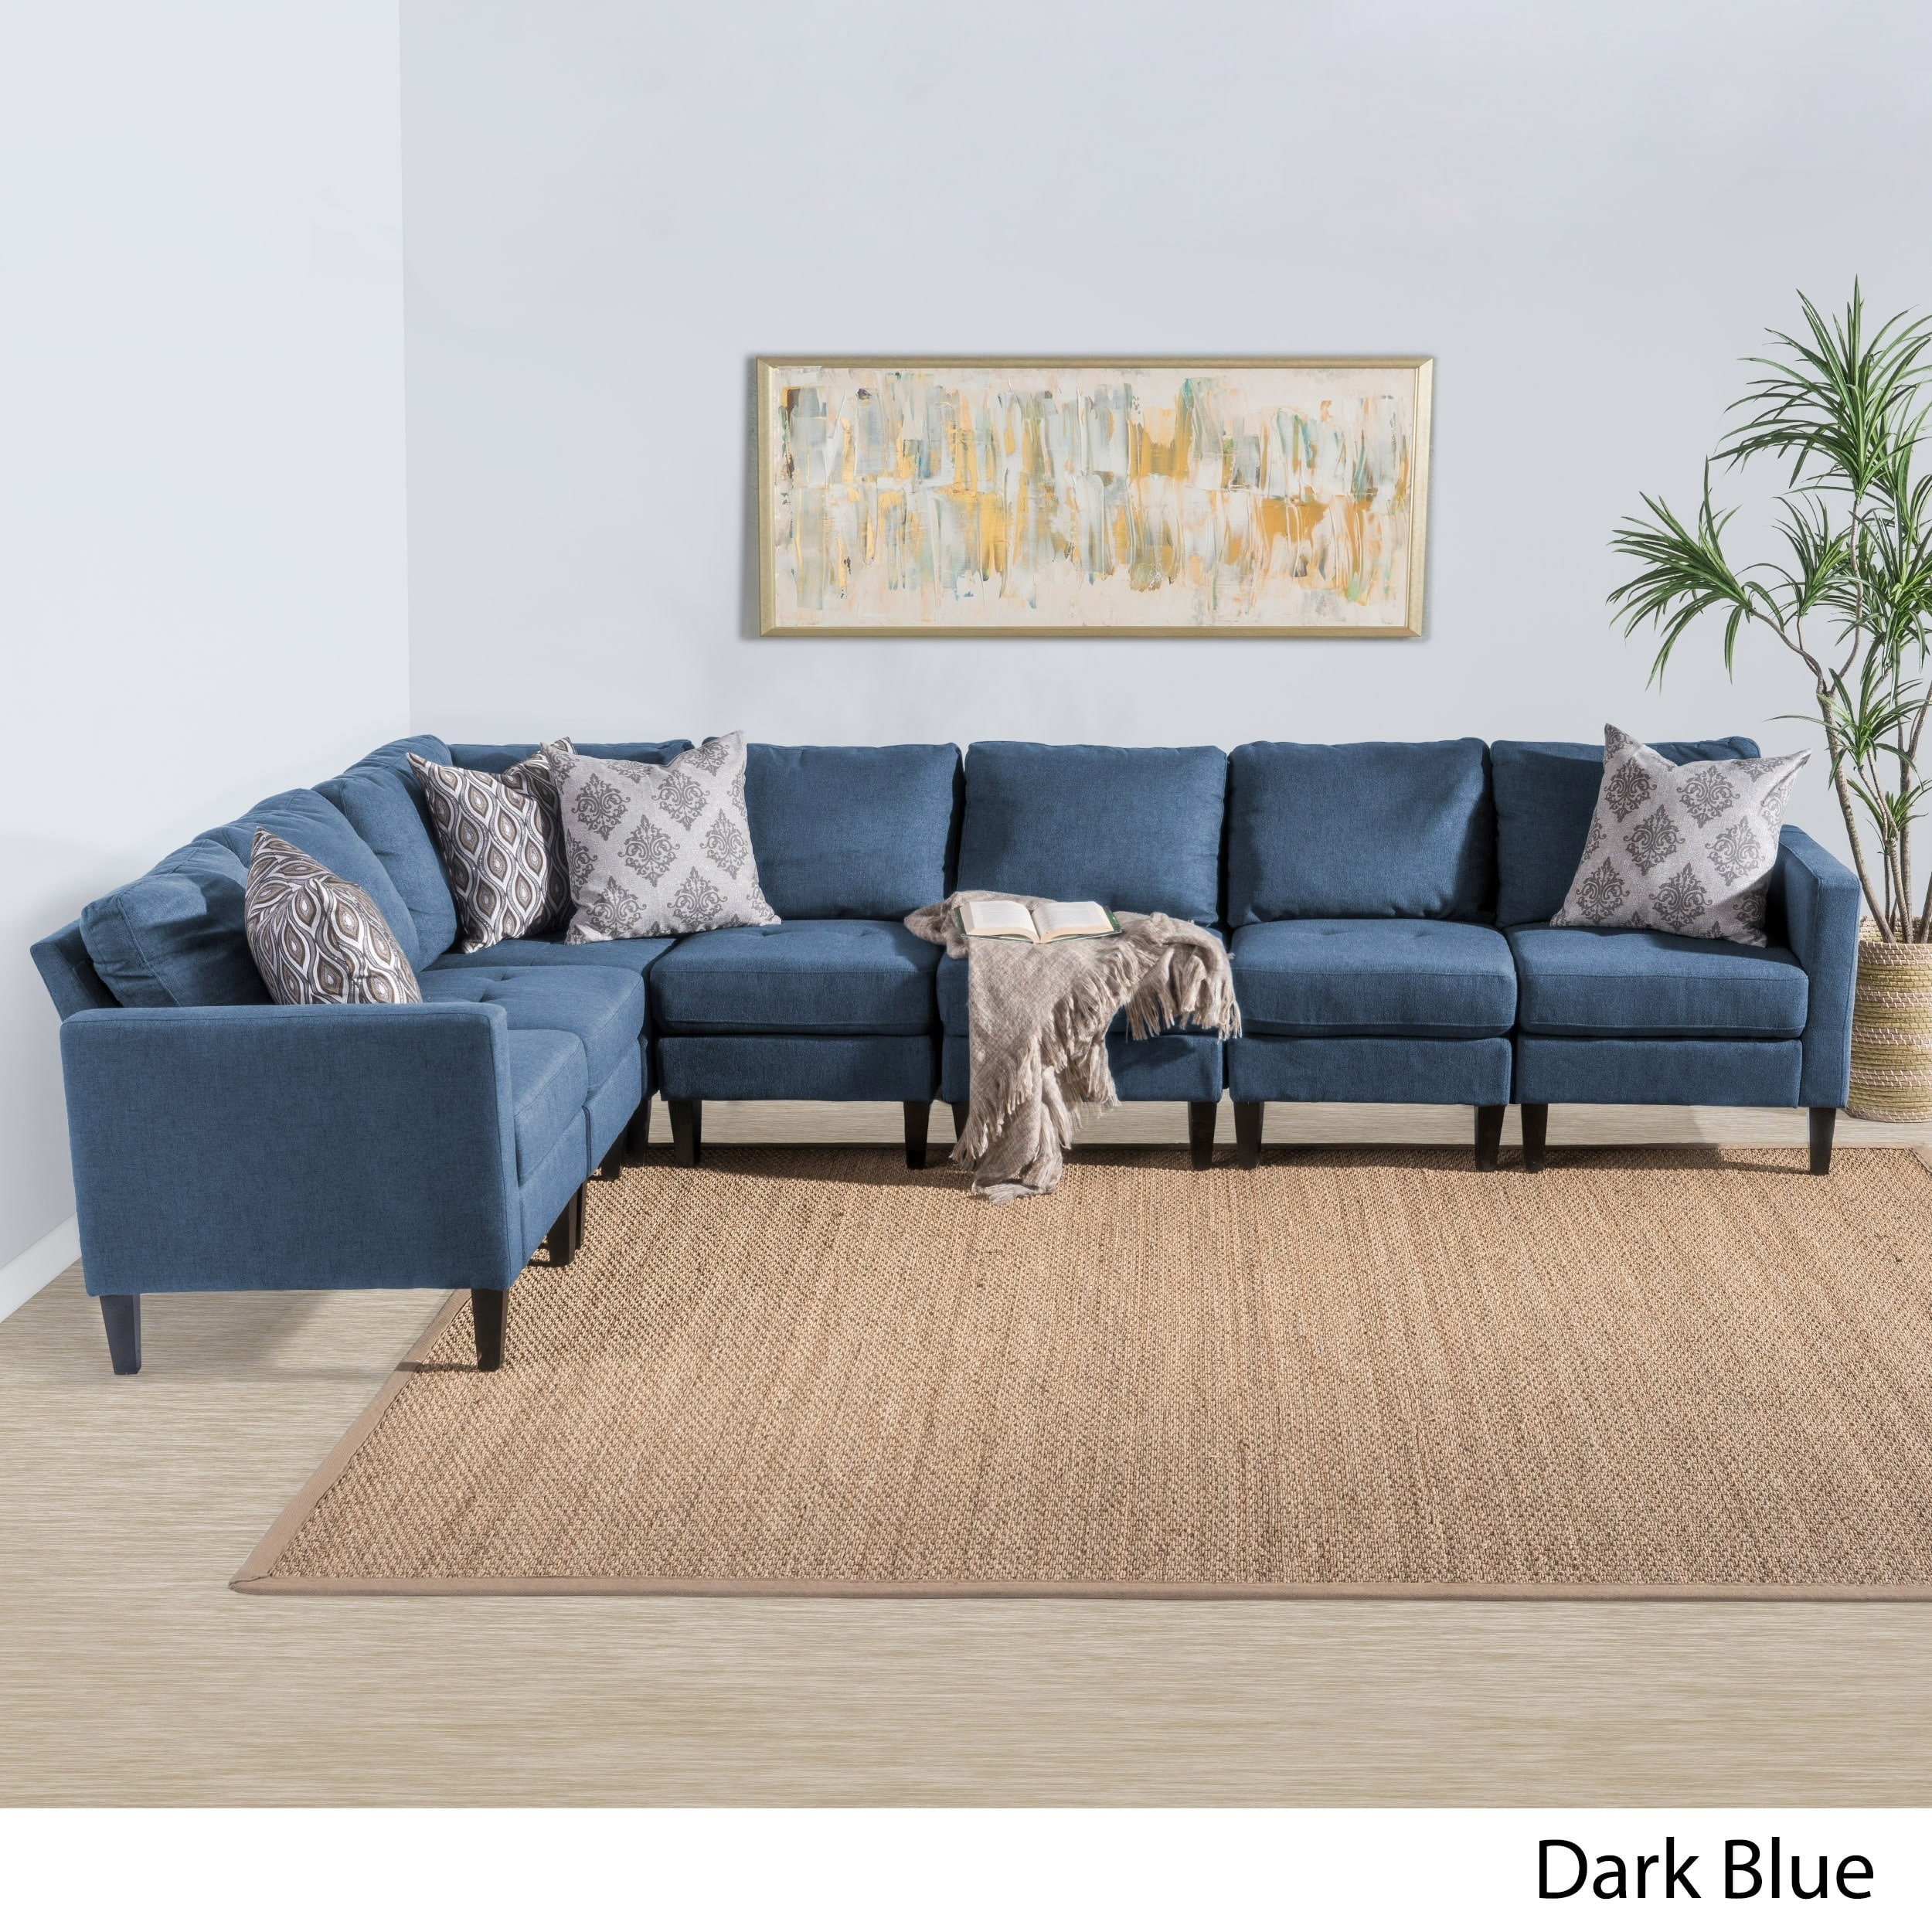 Sectional Sofa Living Room Furniture For Less | Overstock In 10X8 Sectional Sofas (Image 5 of 10)